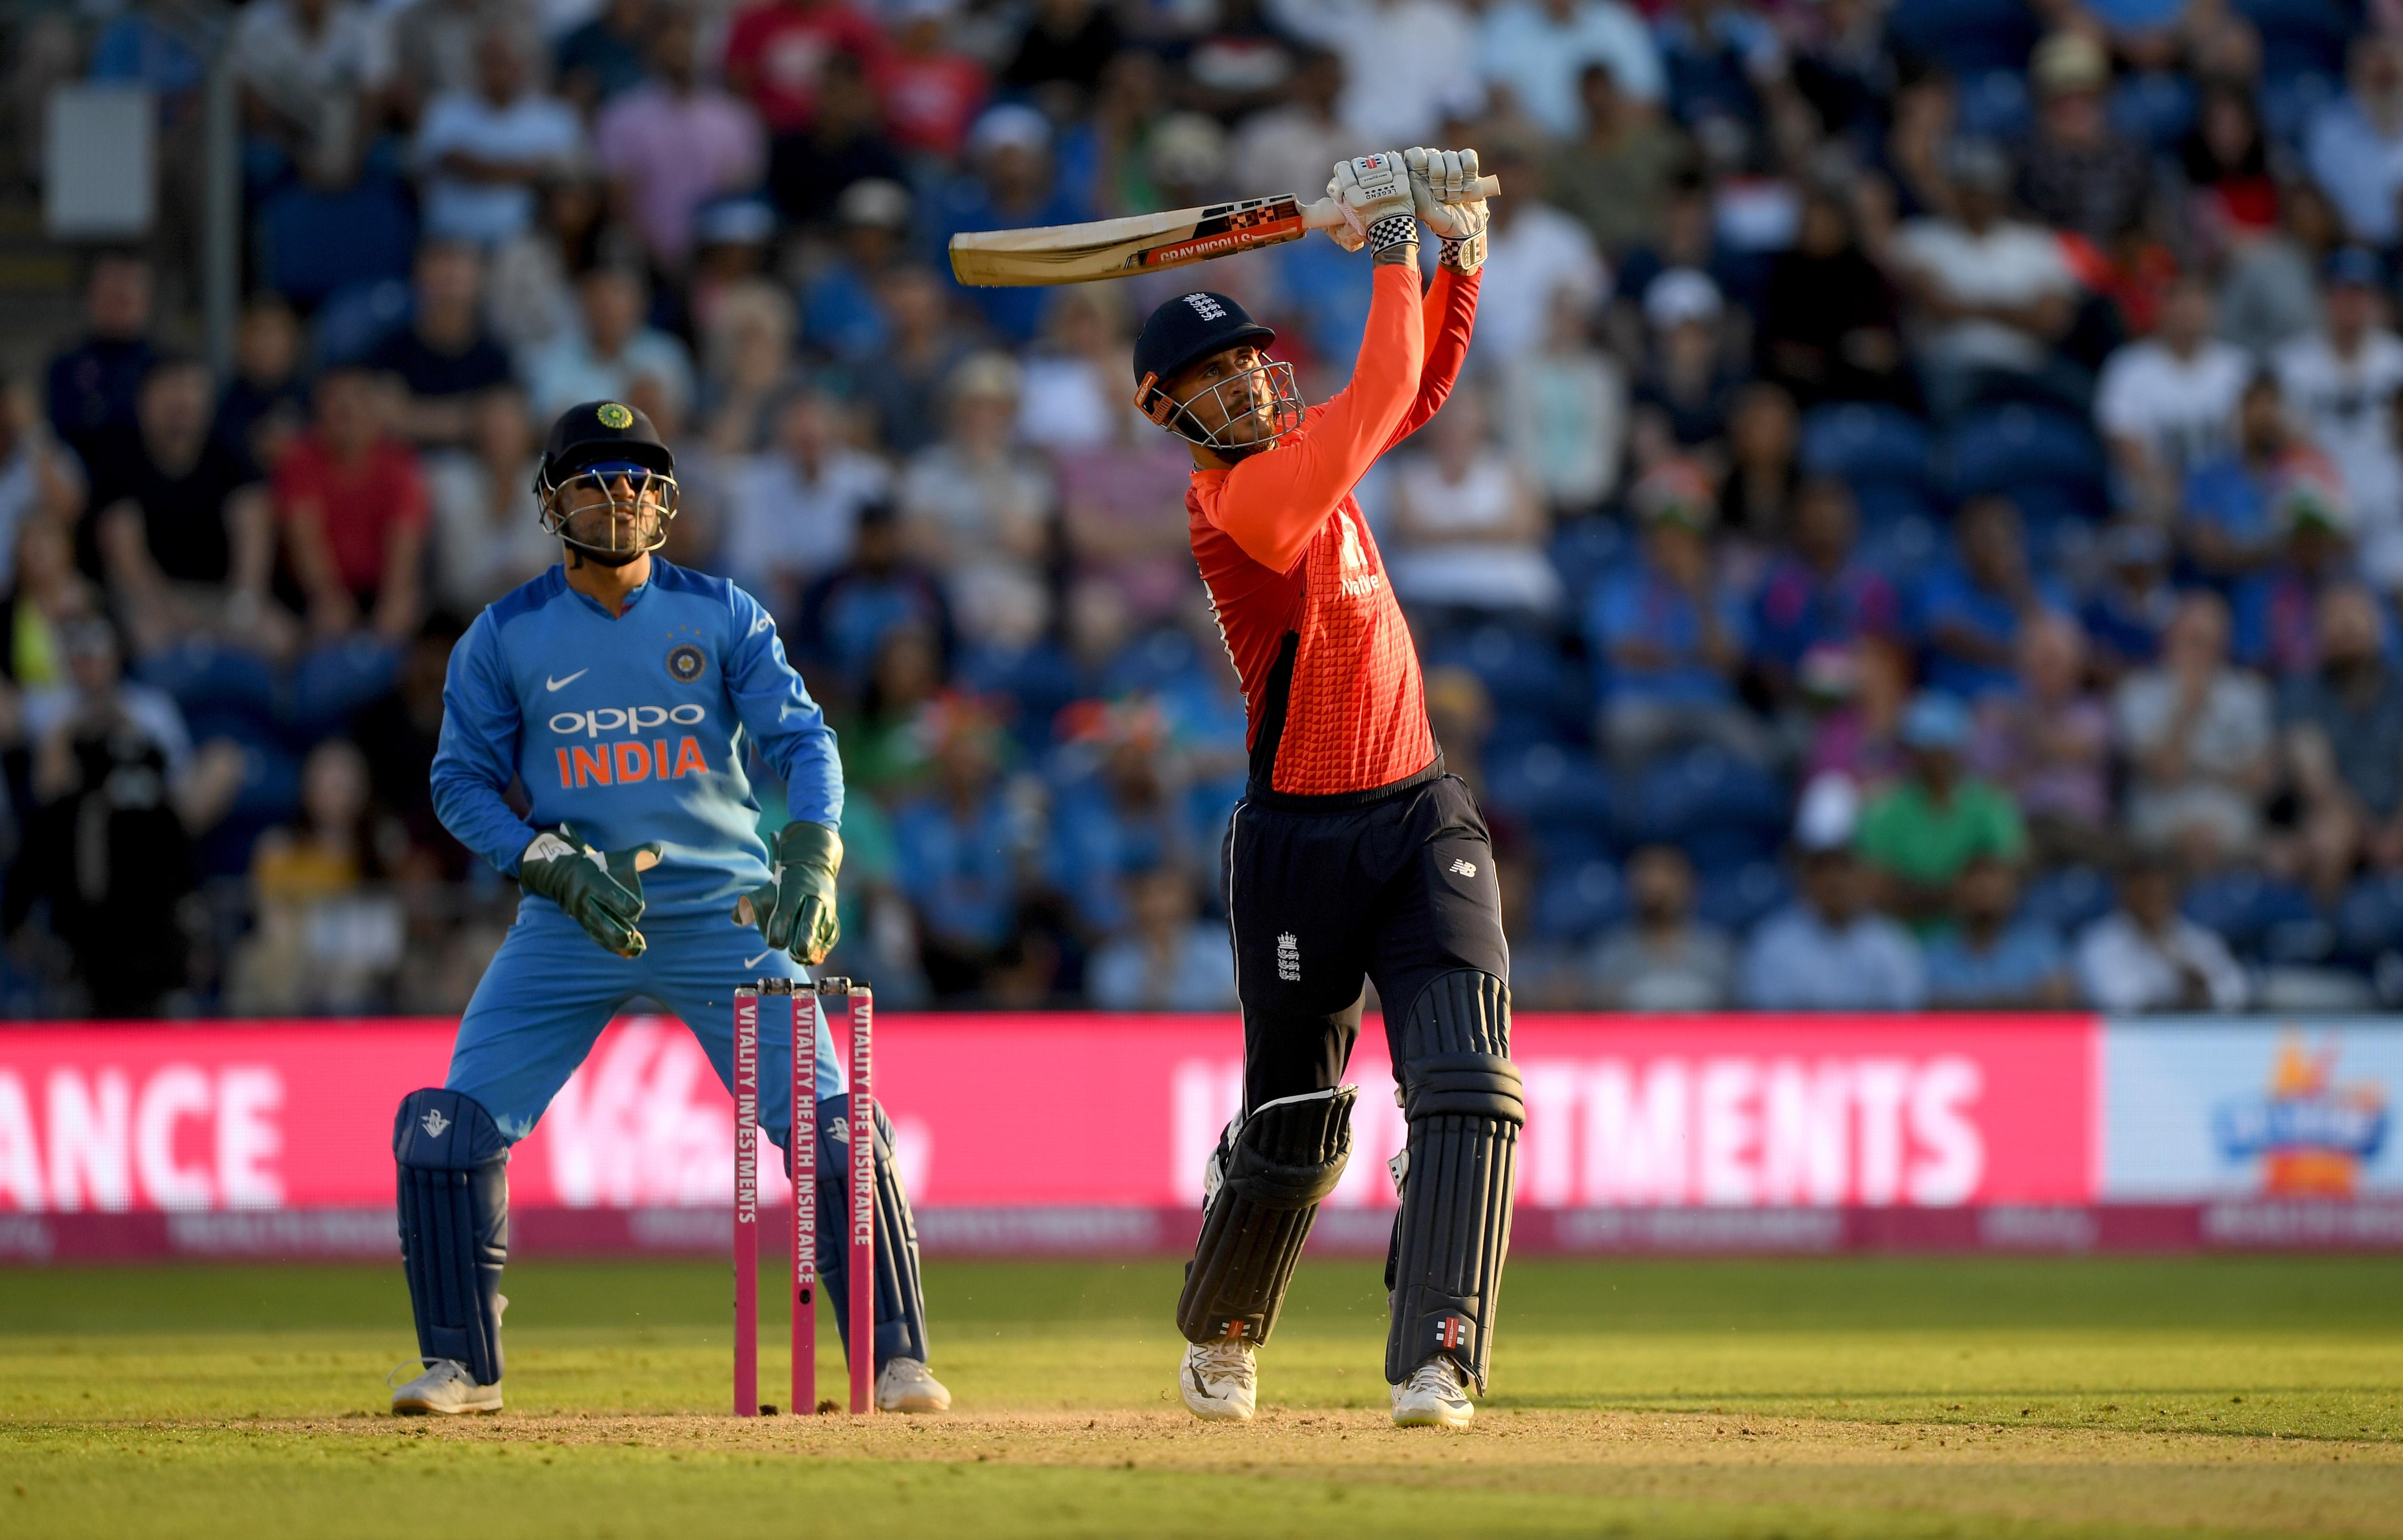 Alex Hales fired England to a series-levelling victory in Cardiff on Friday